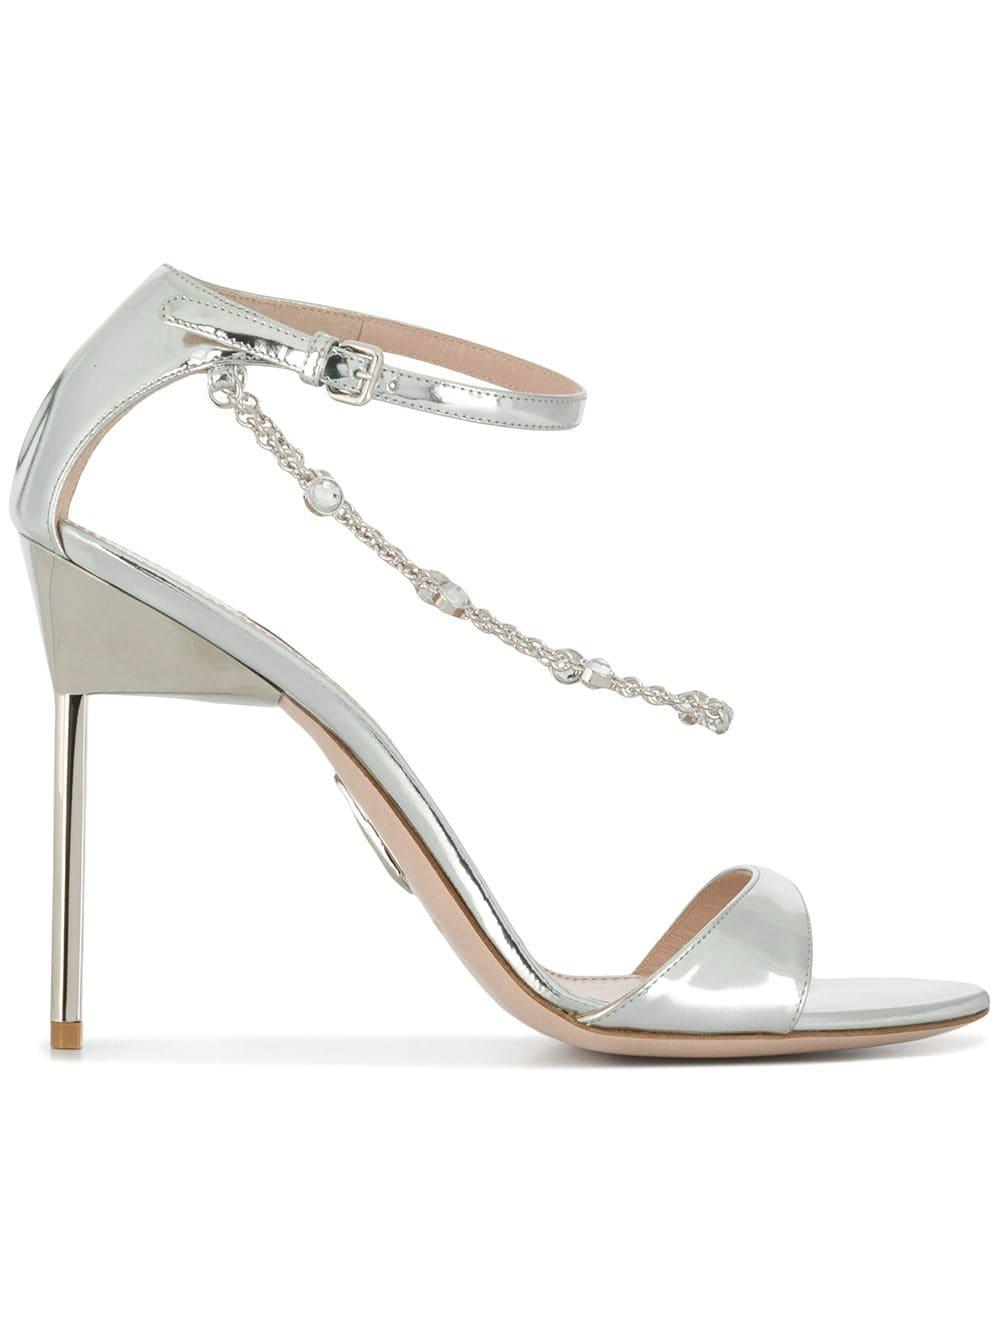 4b55d785410 Miu Miu Crystal Chain Stiletto Sandals in Metallic - Lyst